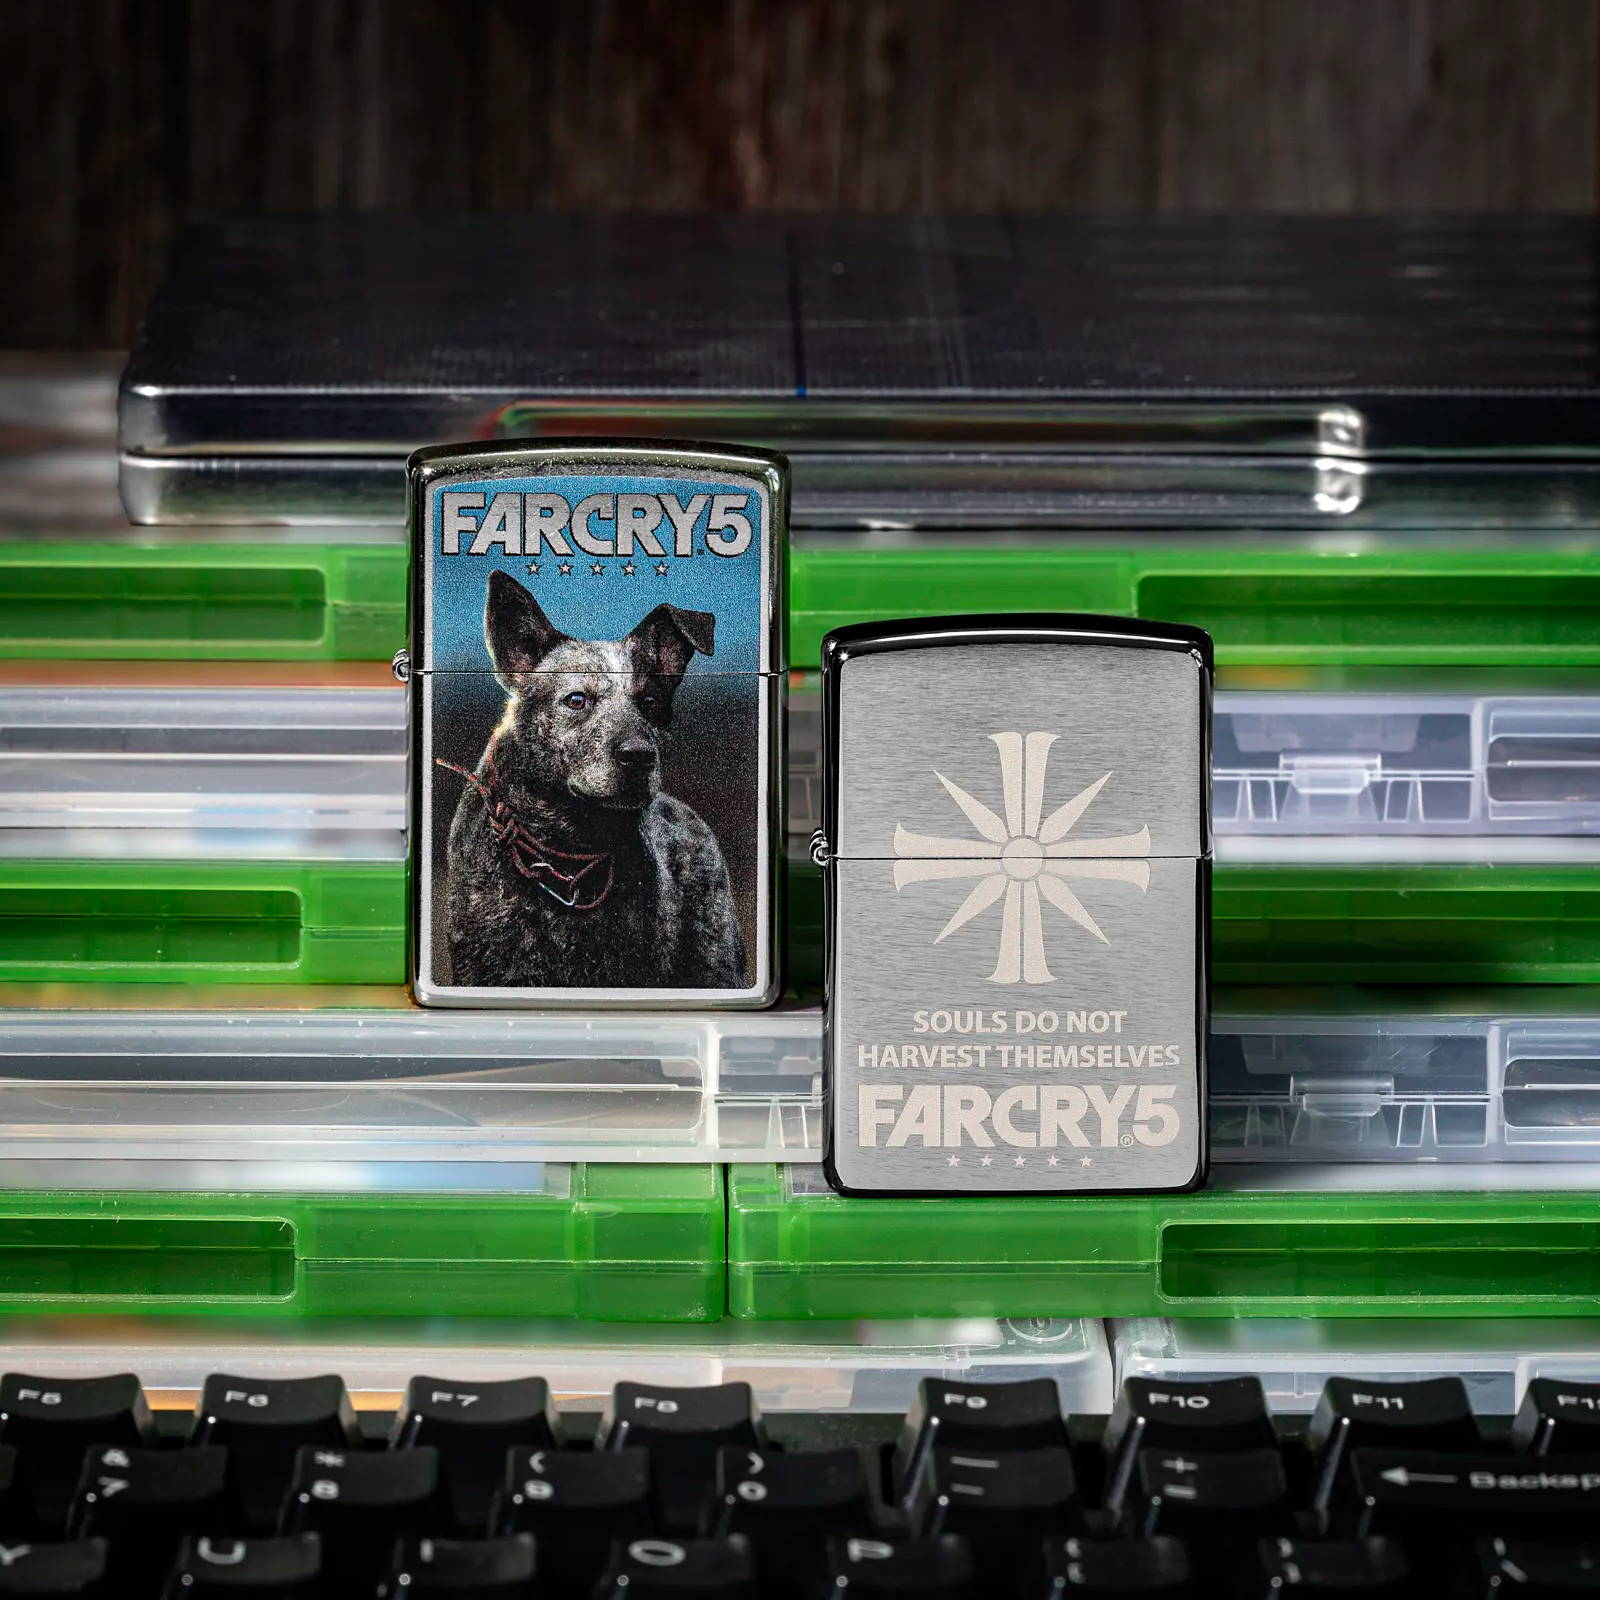 Far Cry 5 lighters standing on game cases with a keyboard in the foreground